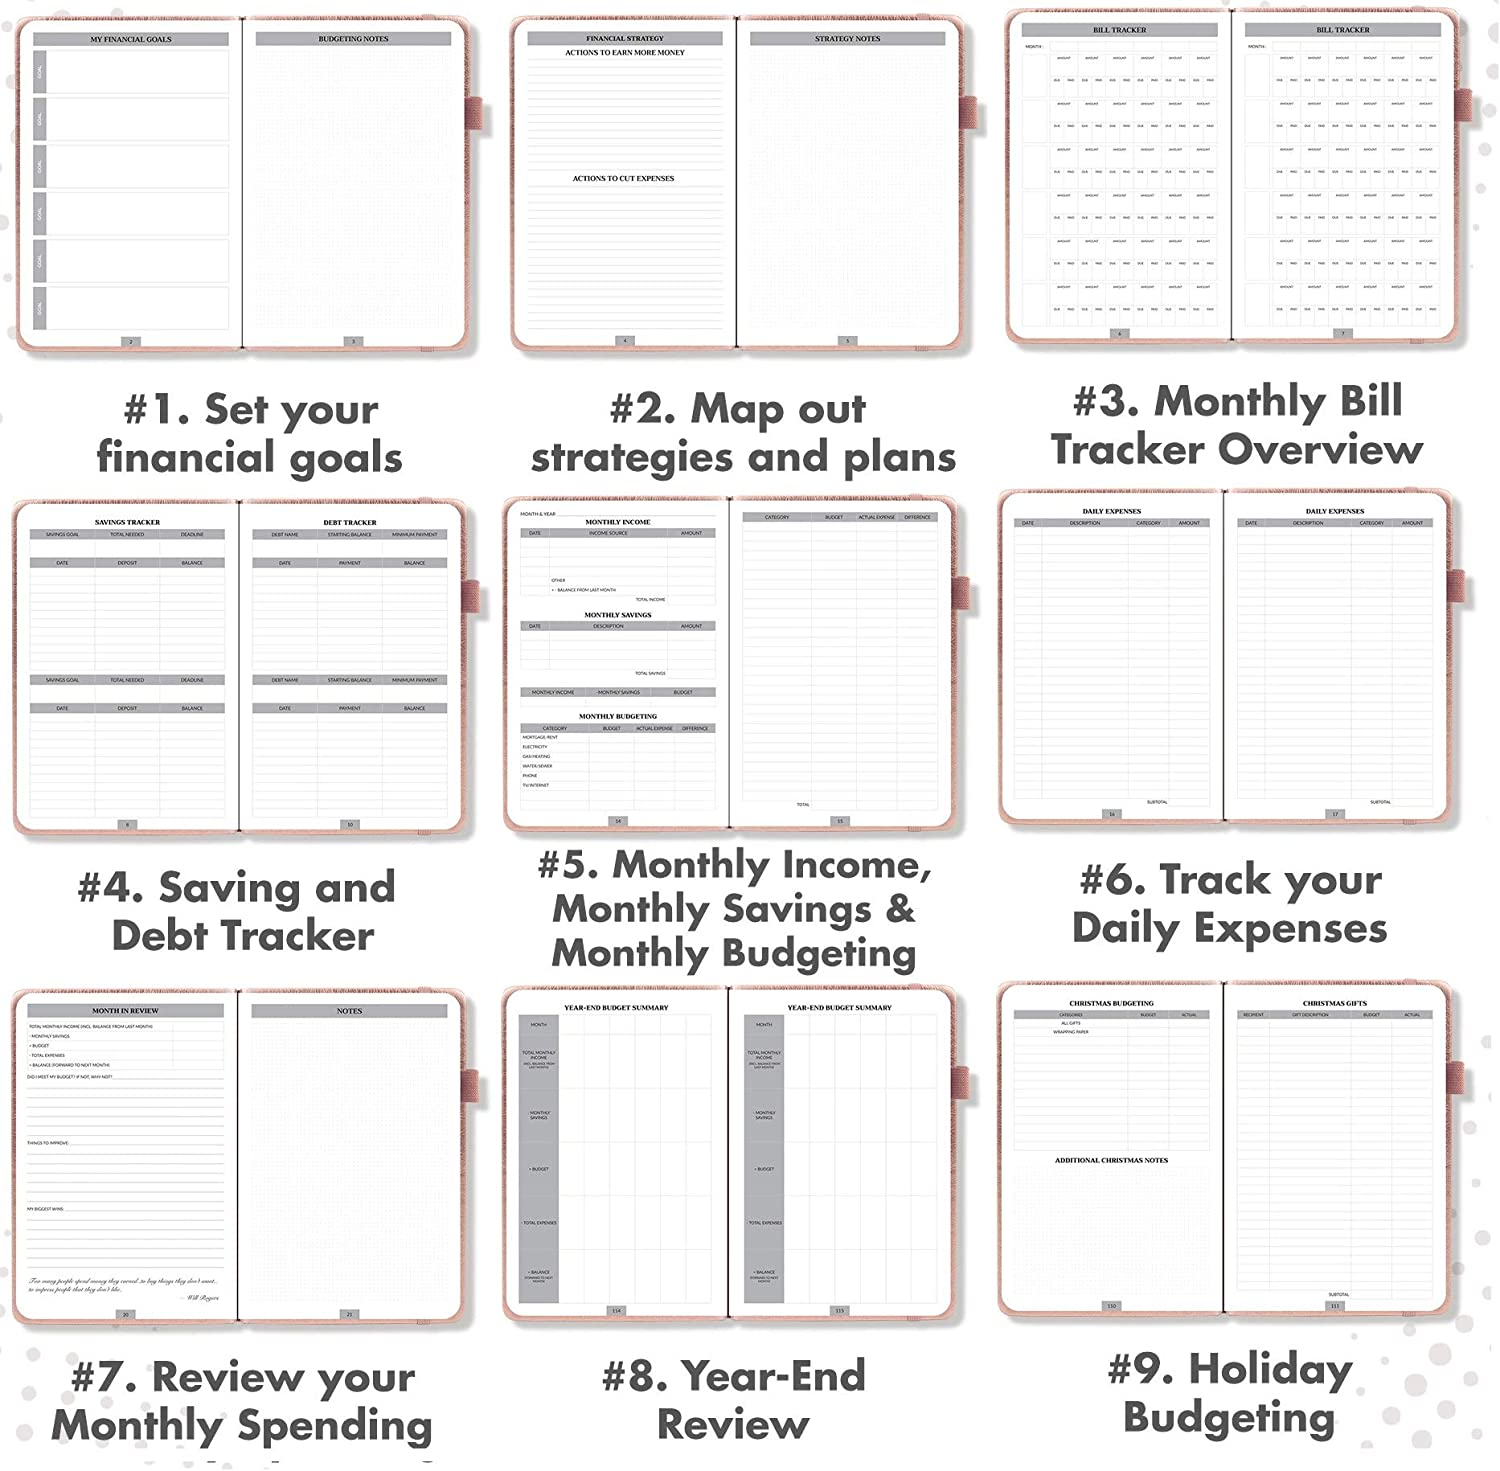 Gorgeous Monthly Budget Planner The Perfect Monthly Budgeting Book That Manages Your Finances Effectively Easy to Use 12 Month Financial Organizer with Expense Tracker Notebook